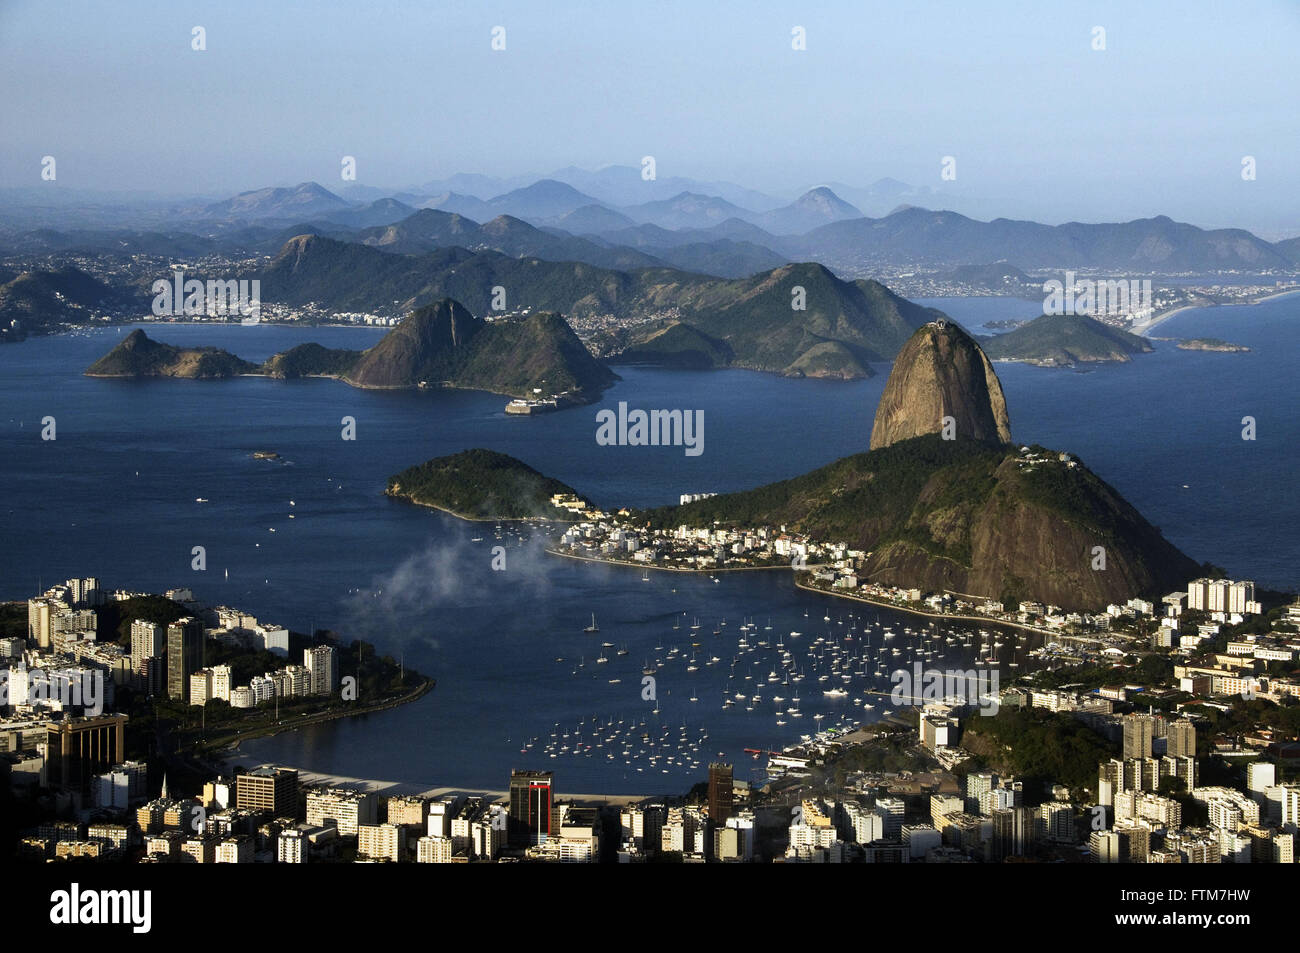 Botafogo Bay with the Morro da Urca and Pao de Acucar - Incidental Niteroi Stock Photo